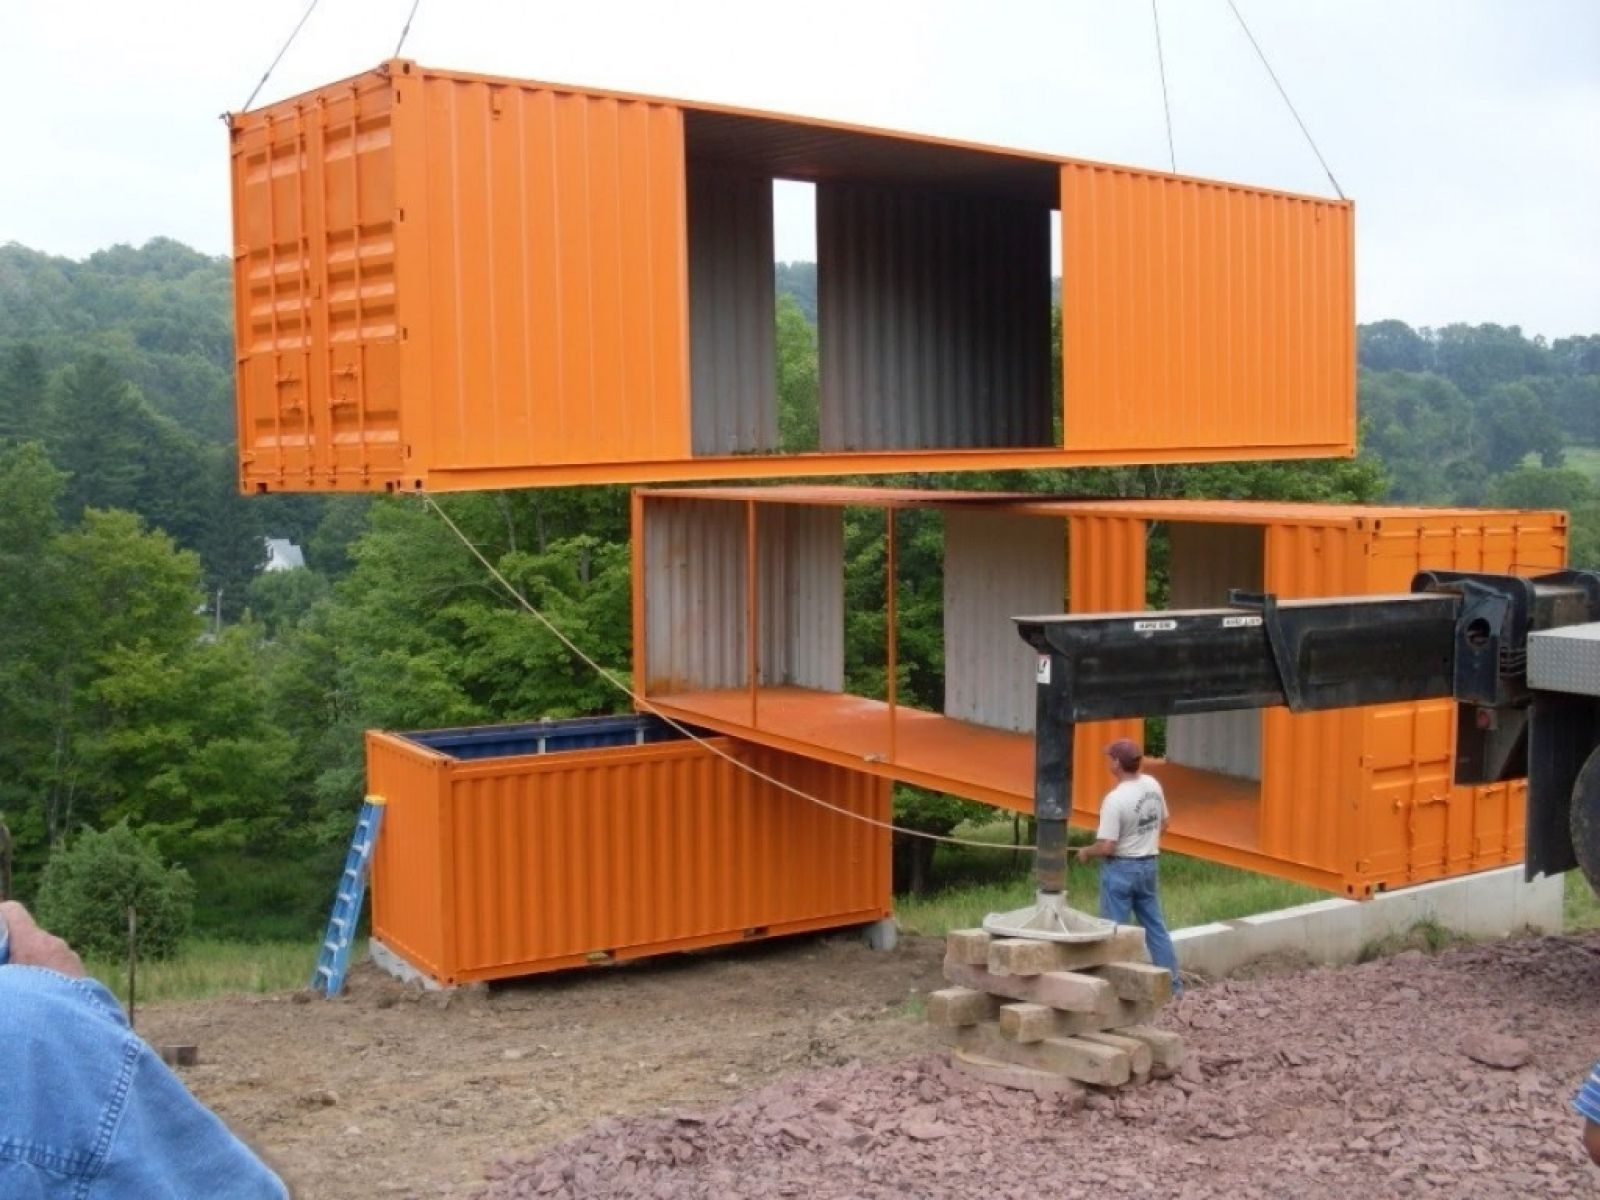 Best Kitchen Gallery: Prefab Shipping Container Homes For Sale Unique Home Ideas Prefab of Prefab Shipping Container Homes For Sale  on rachelxblog.com